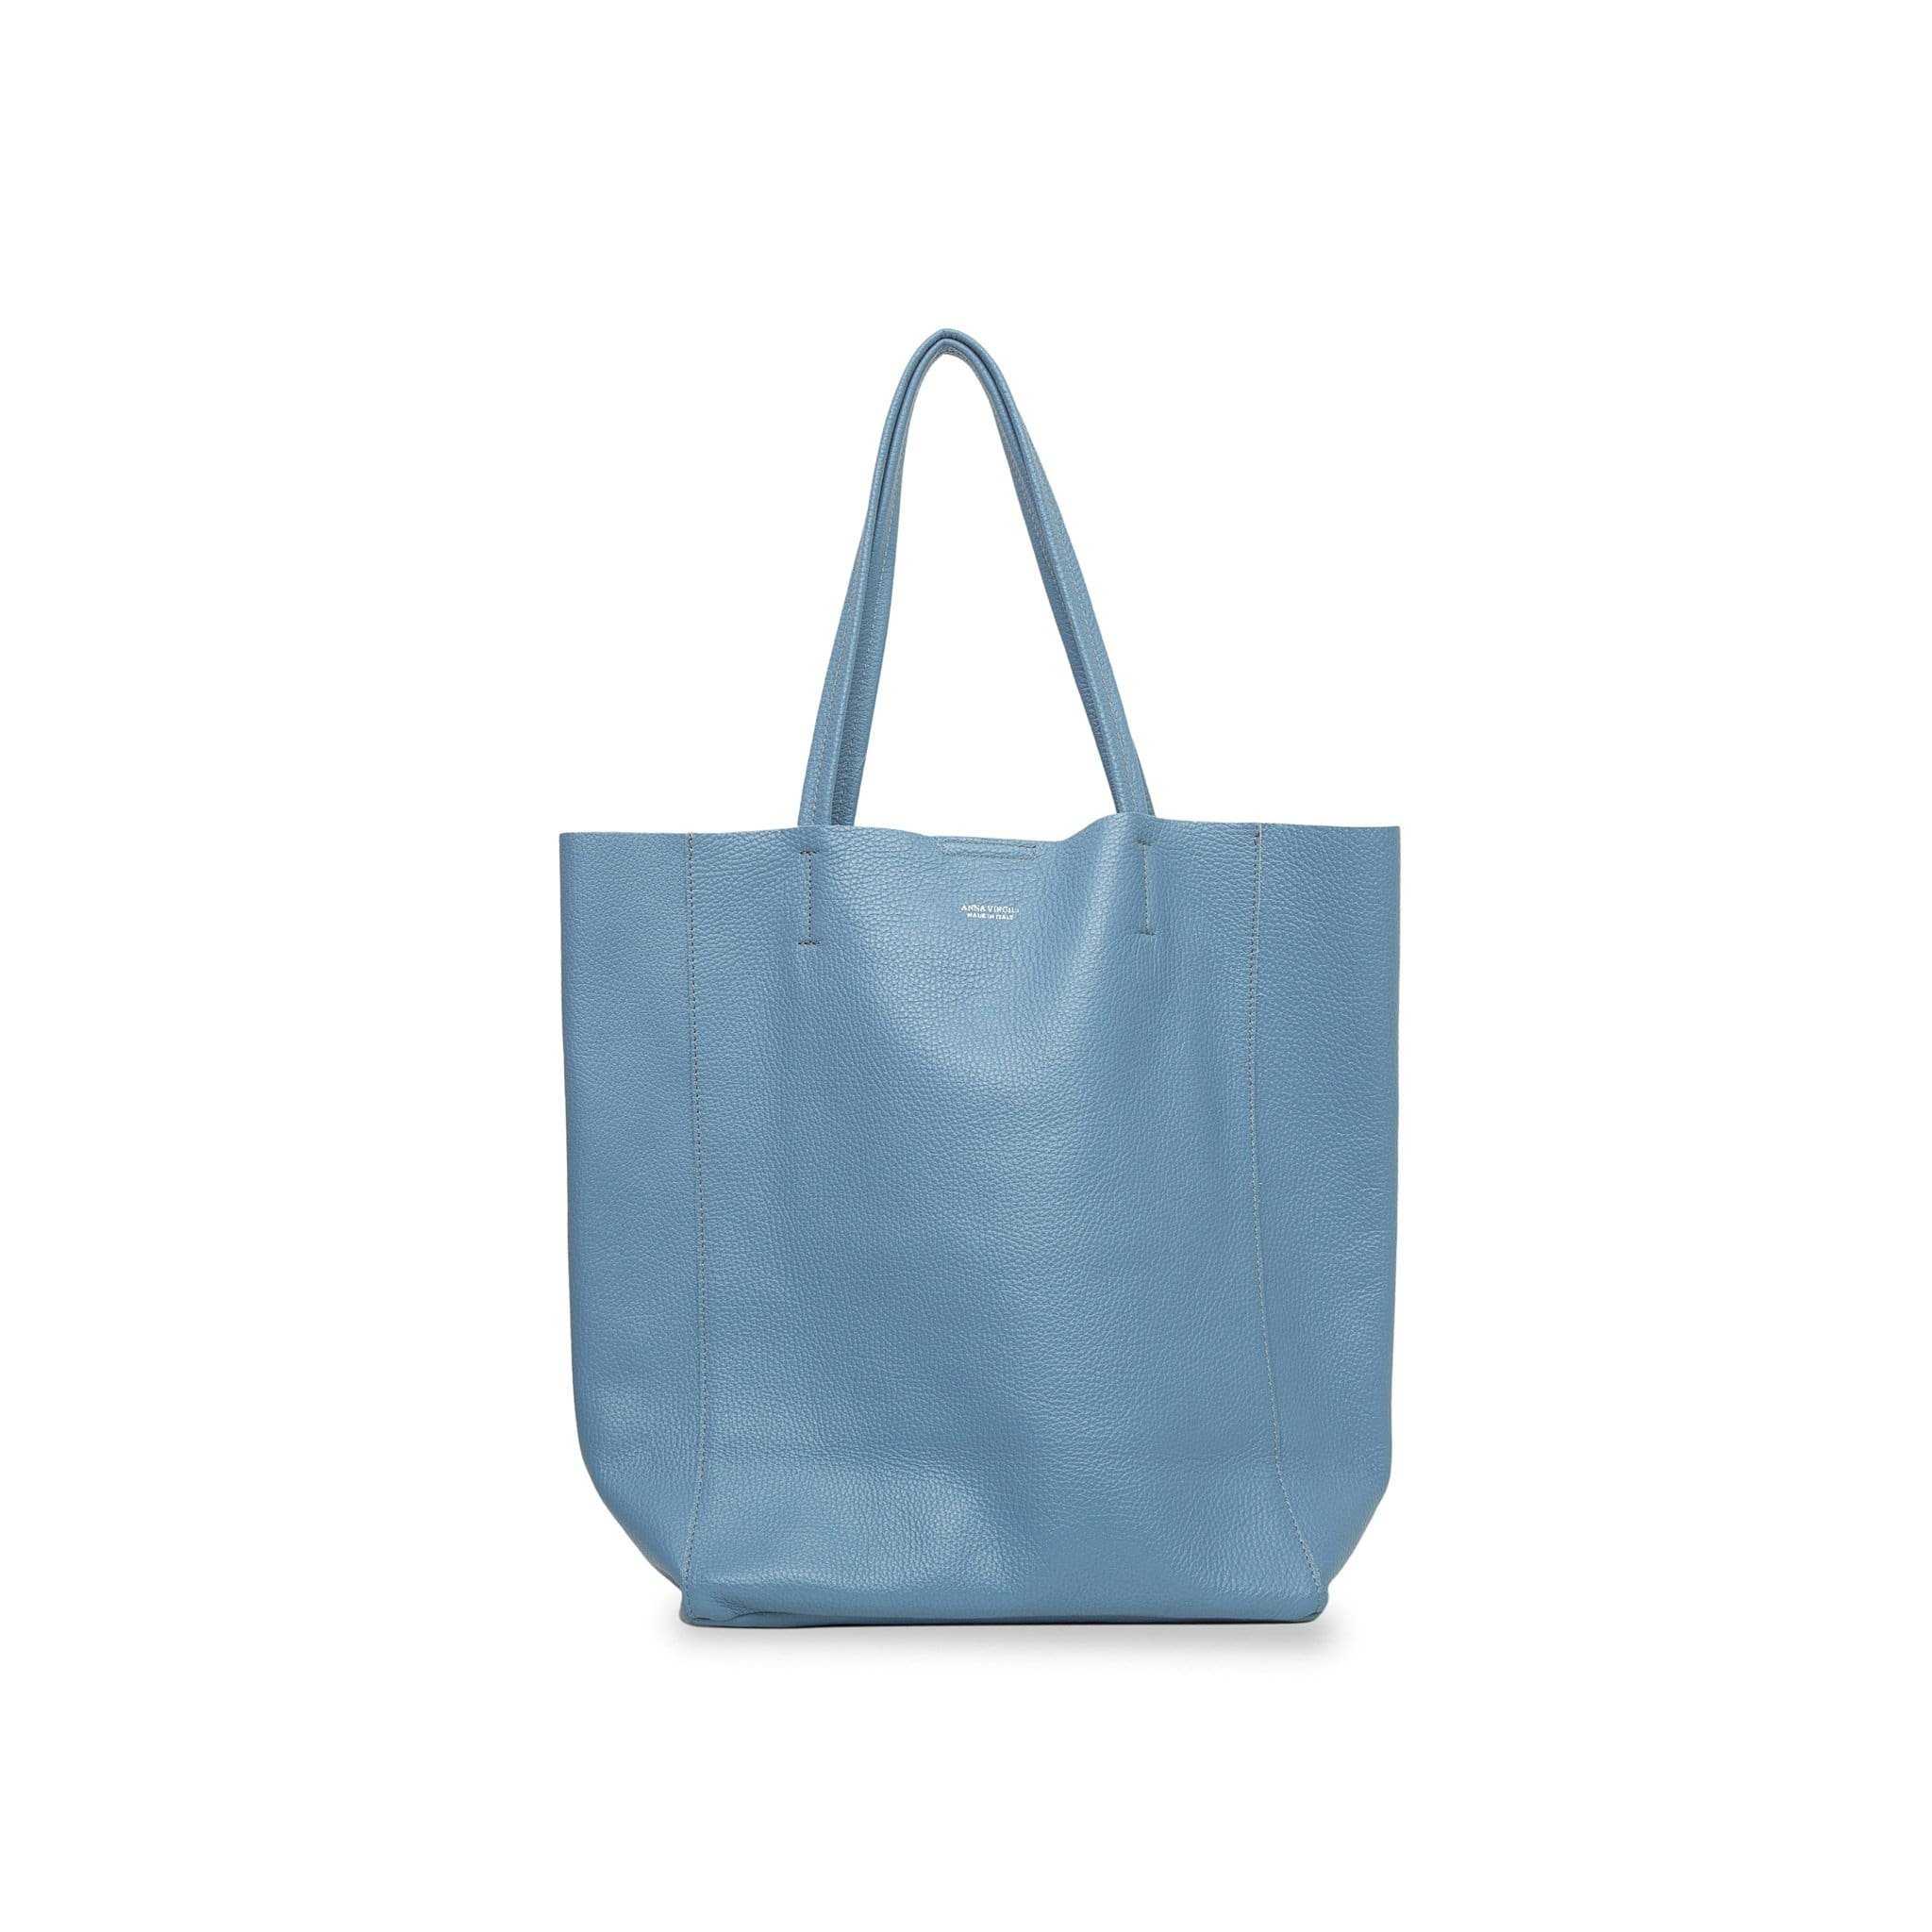 Lidia Palermo Soft Leather Tote - Powder